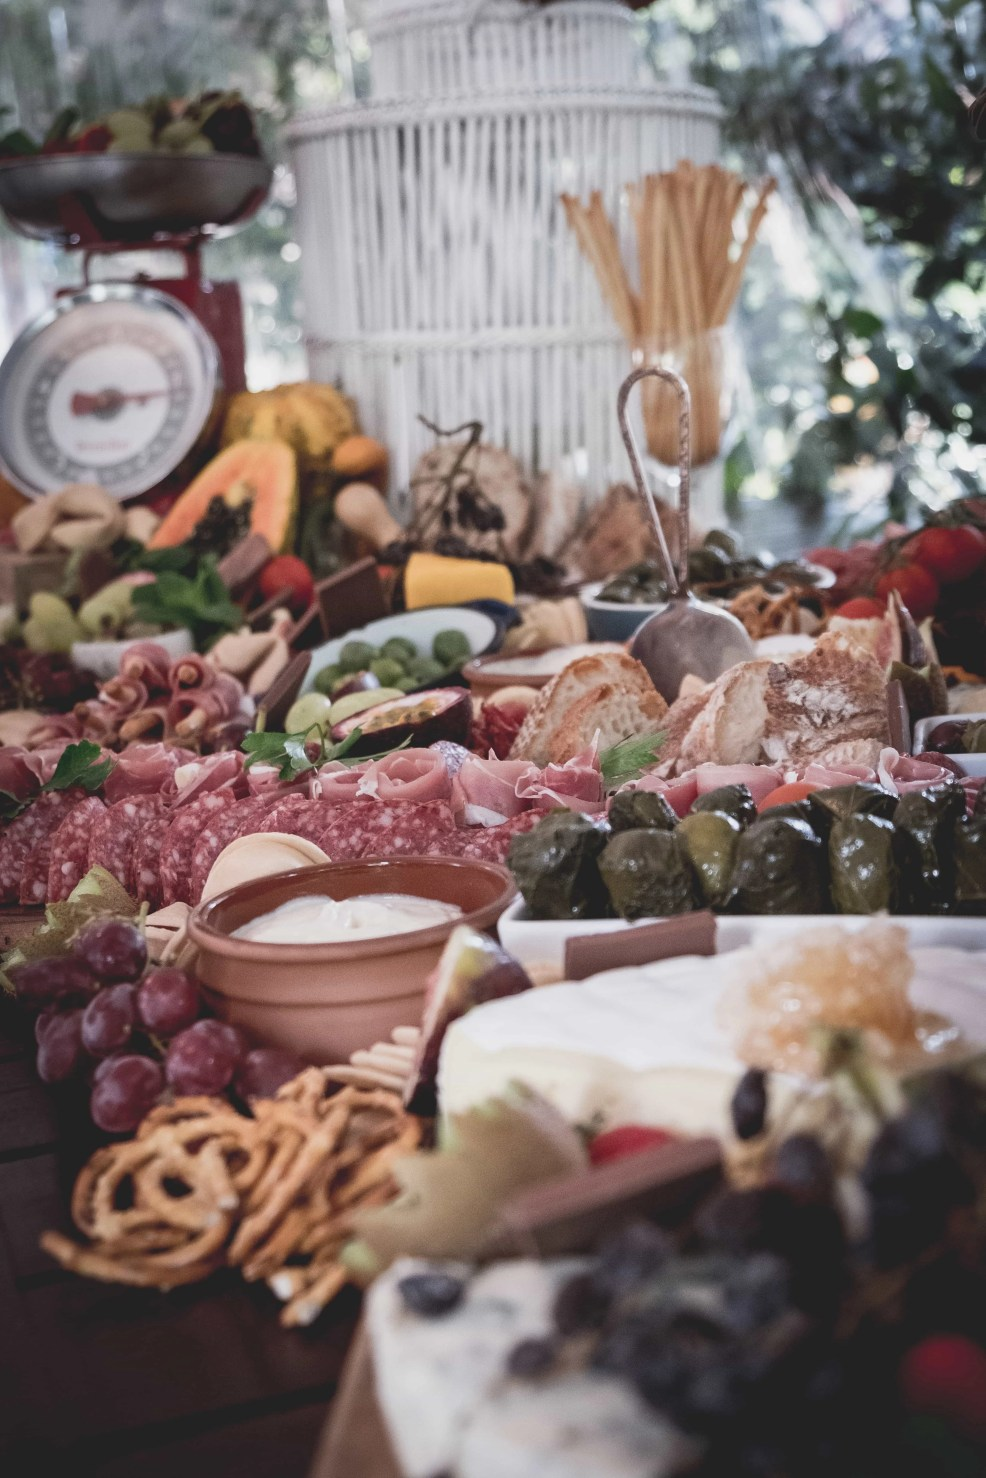 Things to do in Mykonos, Places to visit in Mykonos, Festivals in Mykonos, Mykonos Harvest Festival, Livestock and crops